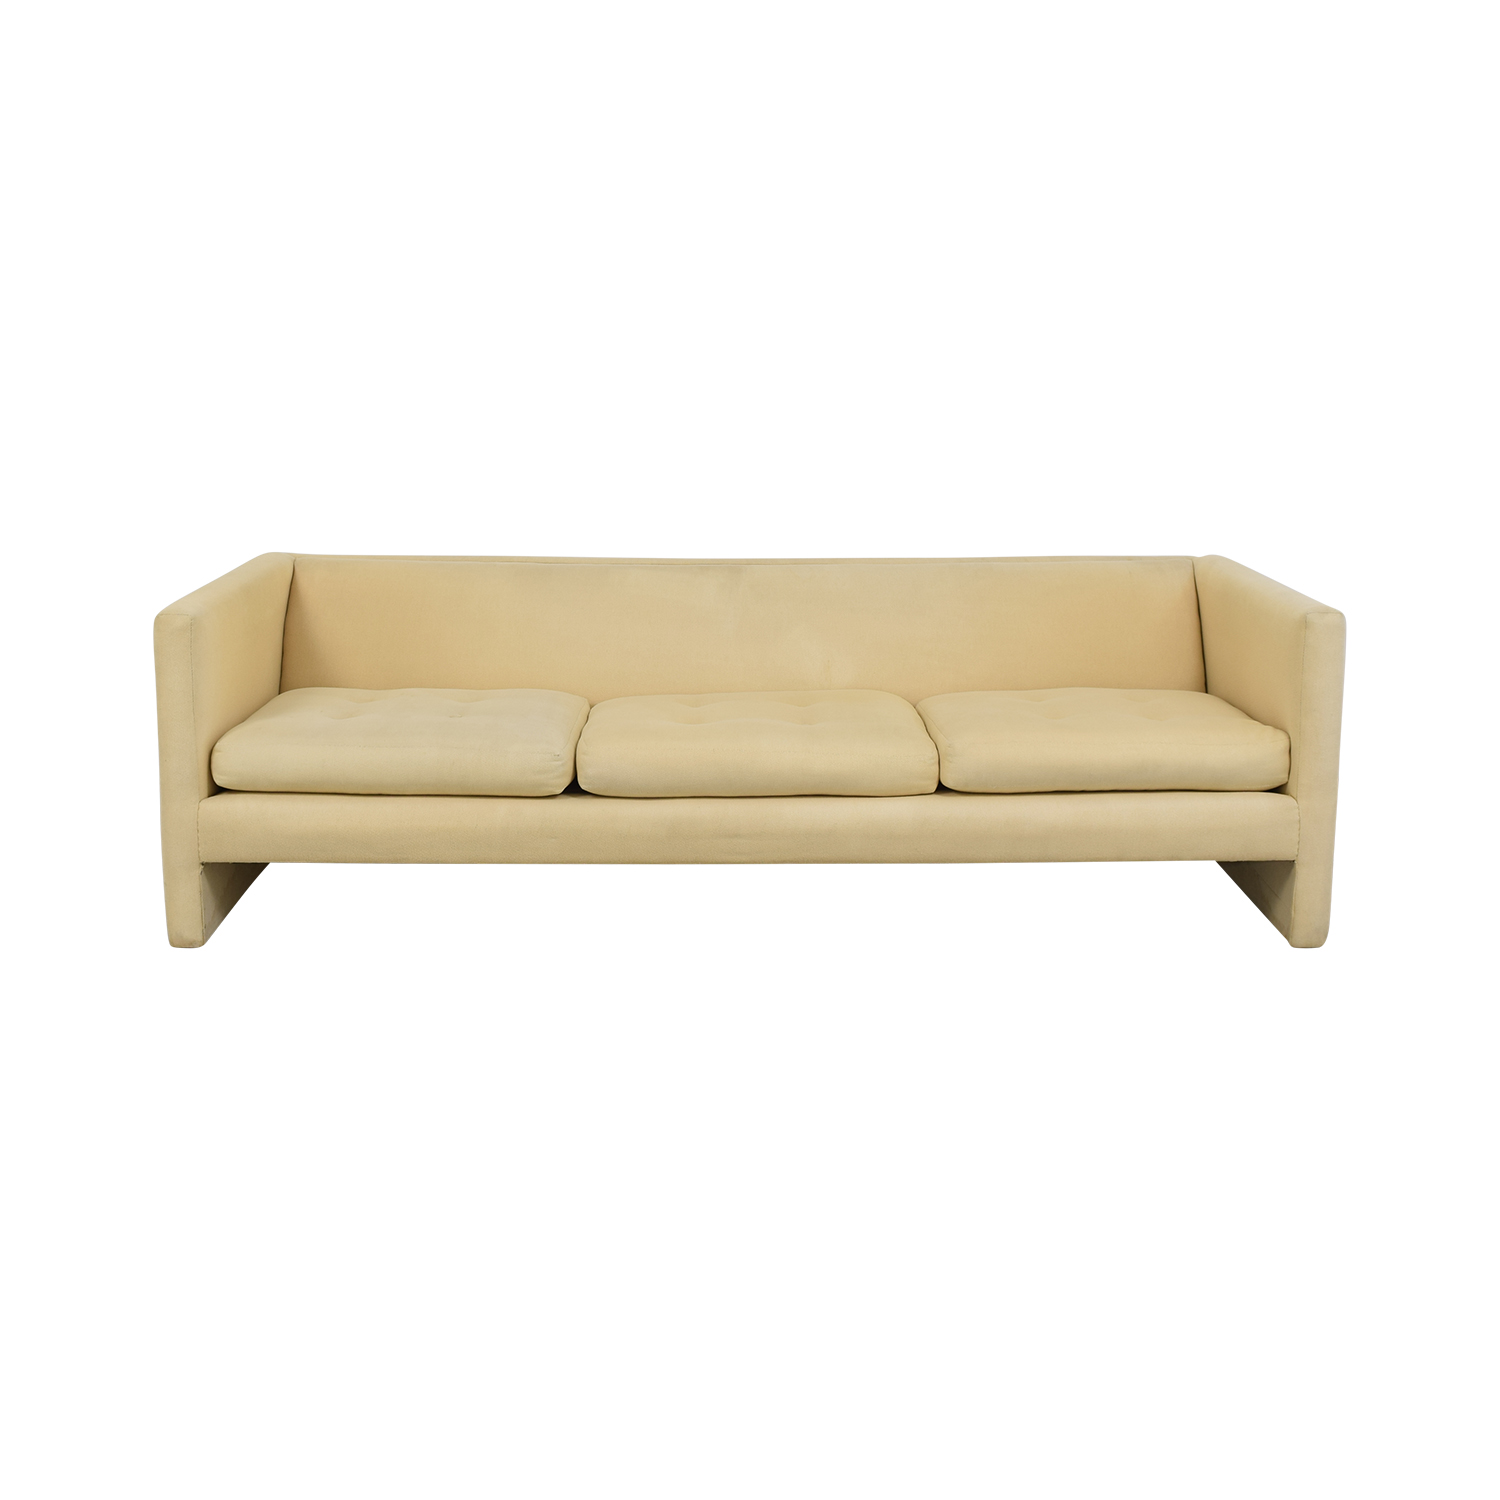 Harvey Probber Harvey Probber Mid-Century Modern Tuxedo Sofa for sale